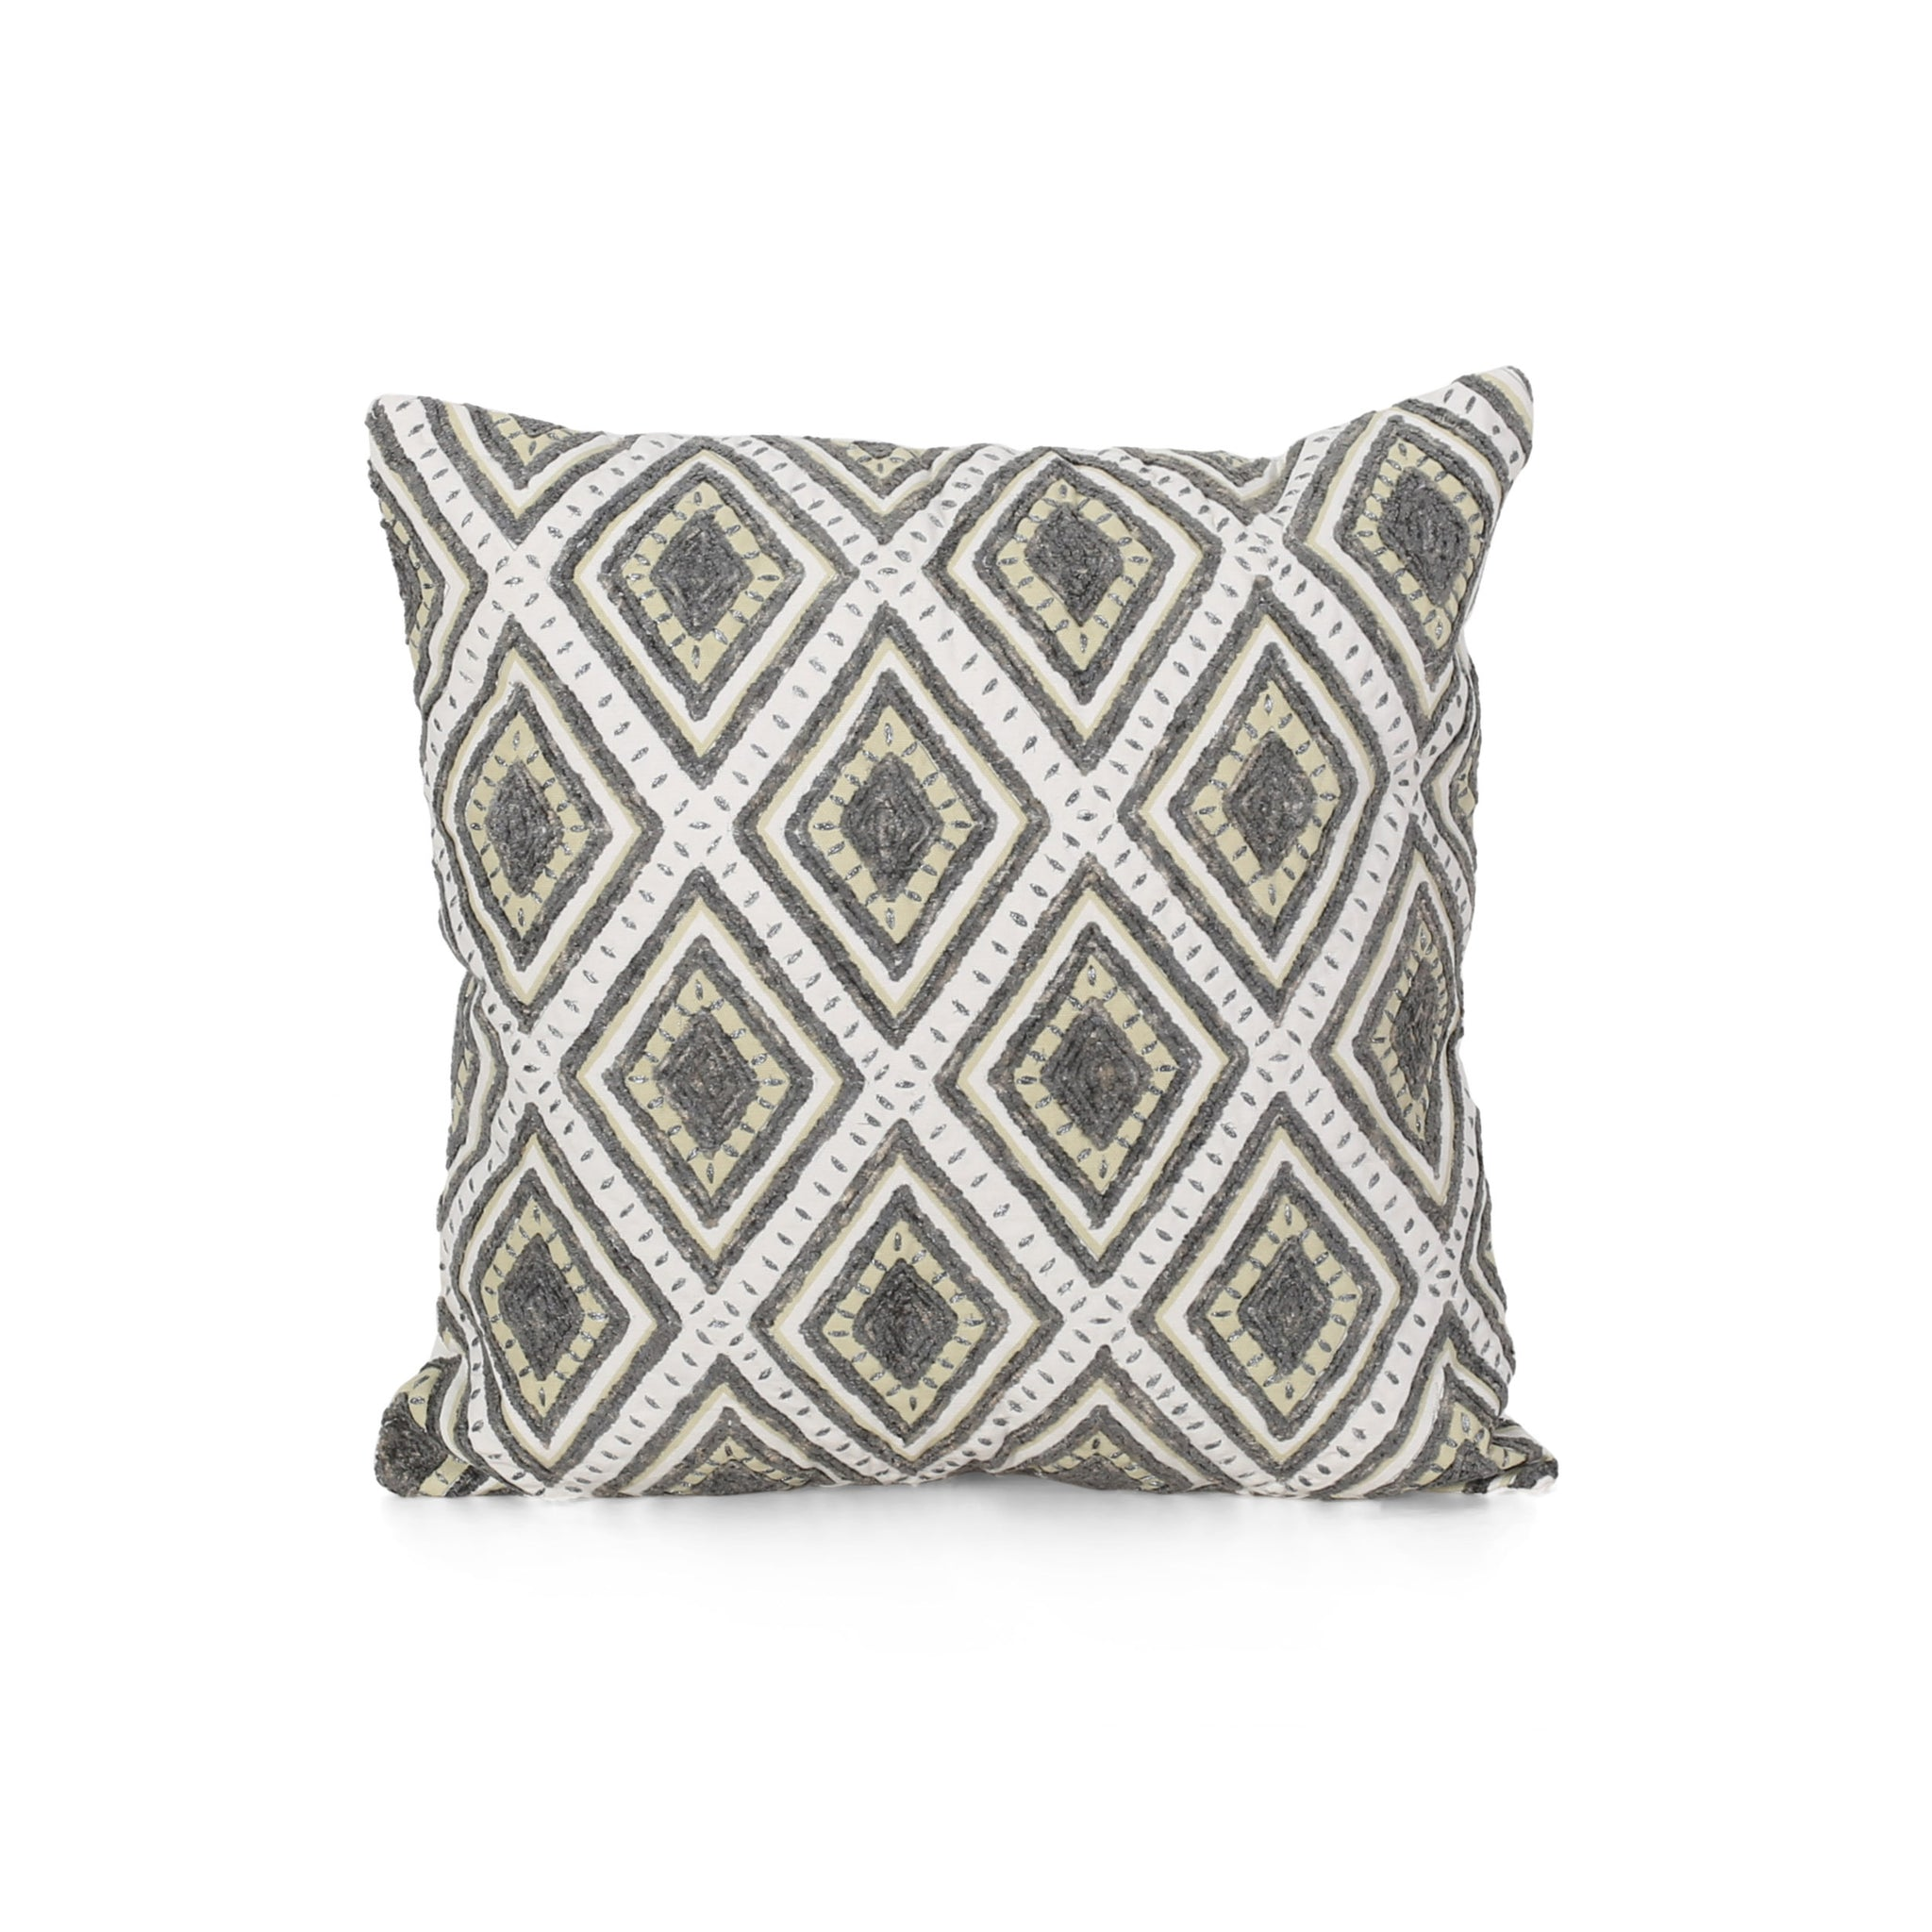 Zanova Cotton Throw Pillow | Color: Gray, Quantity: Single